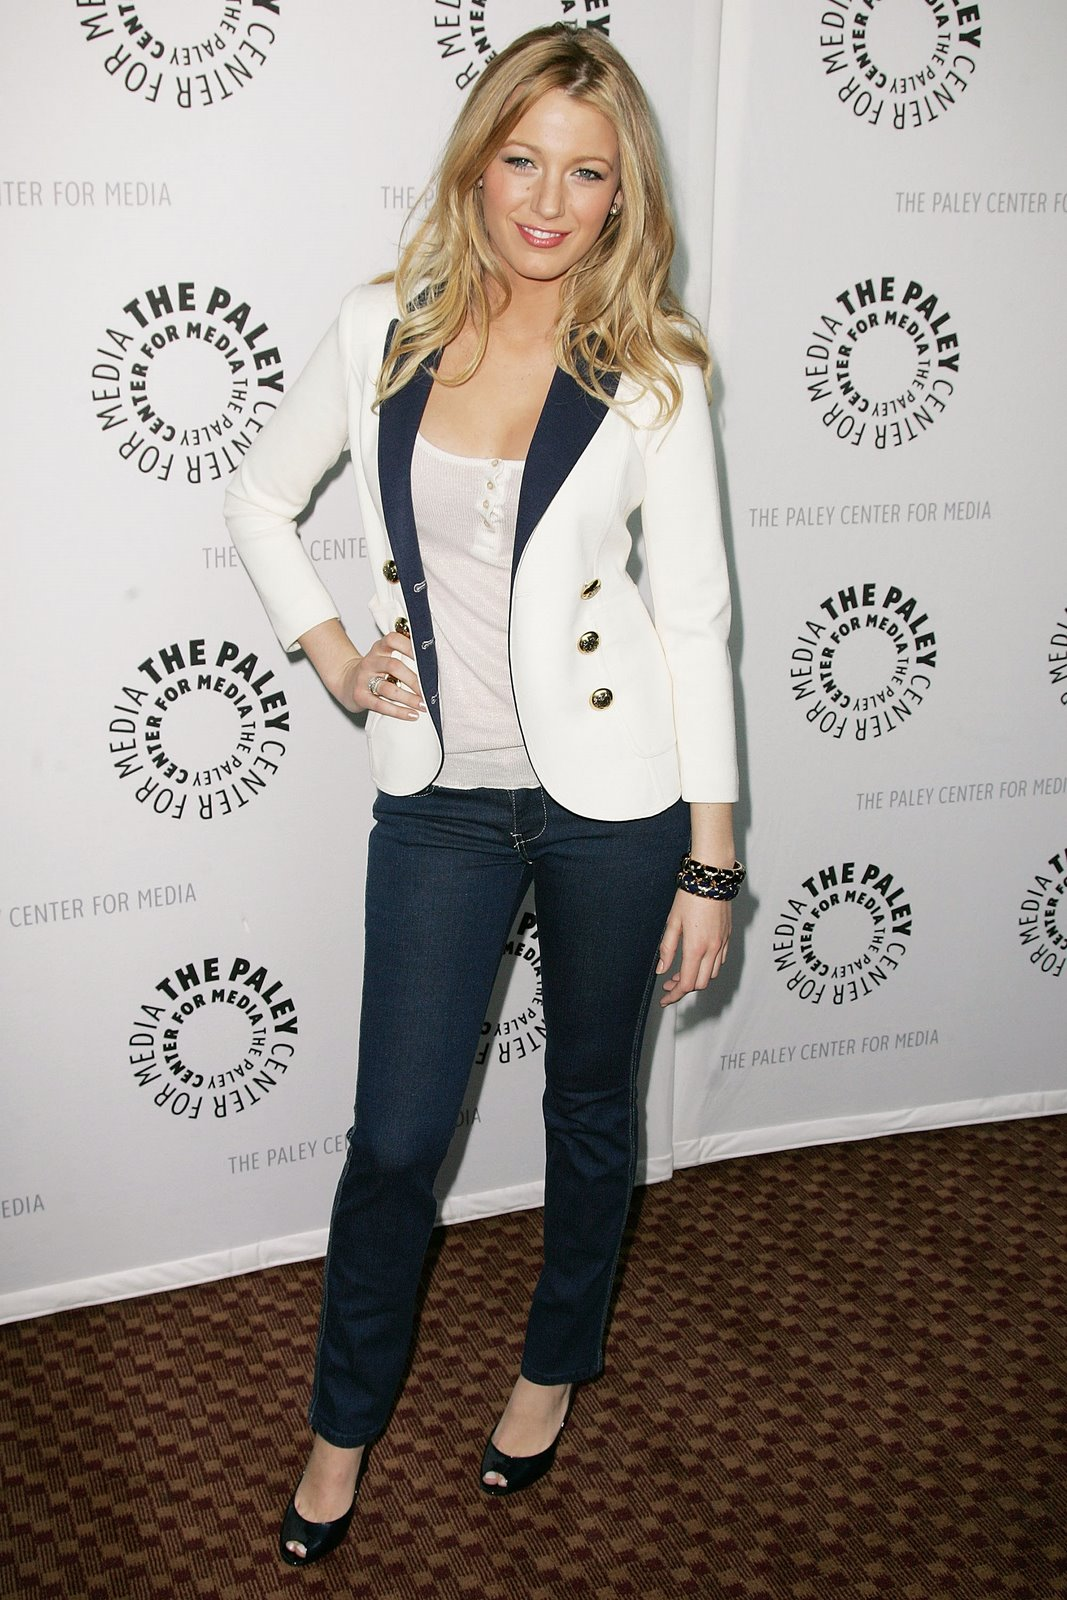 [67650_Celebutopia-Blake_Lively-Media32s_25th_annual_Paley_Television_Festival_Gossip_Girl-02_122_166lo.jpg]